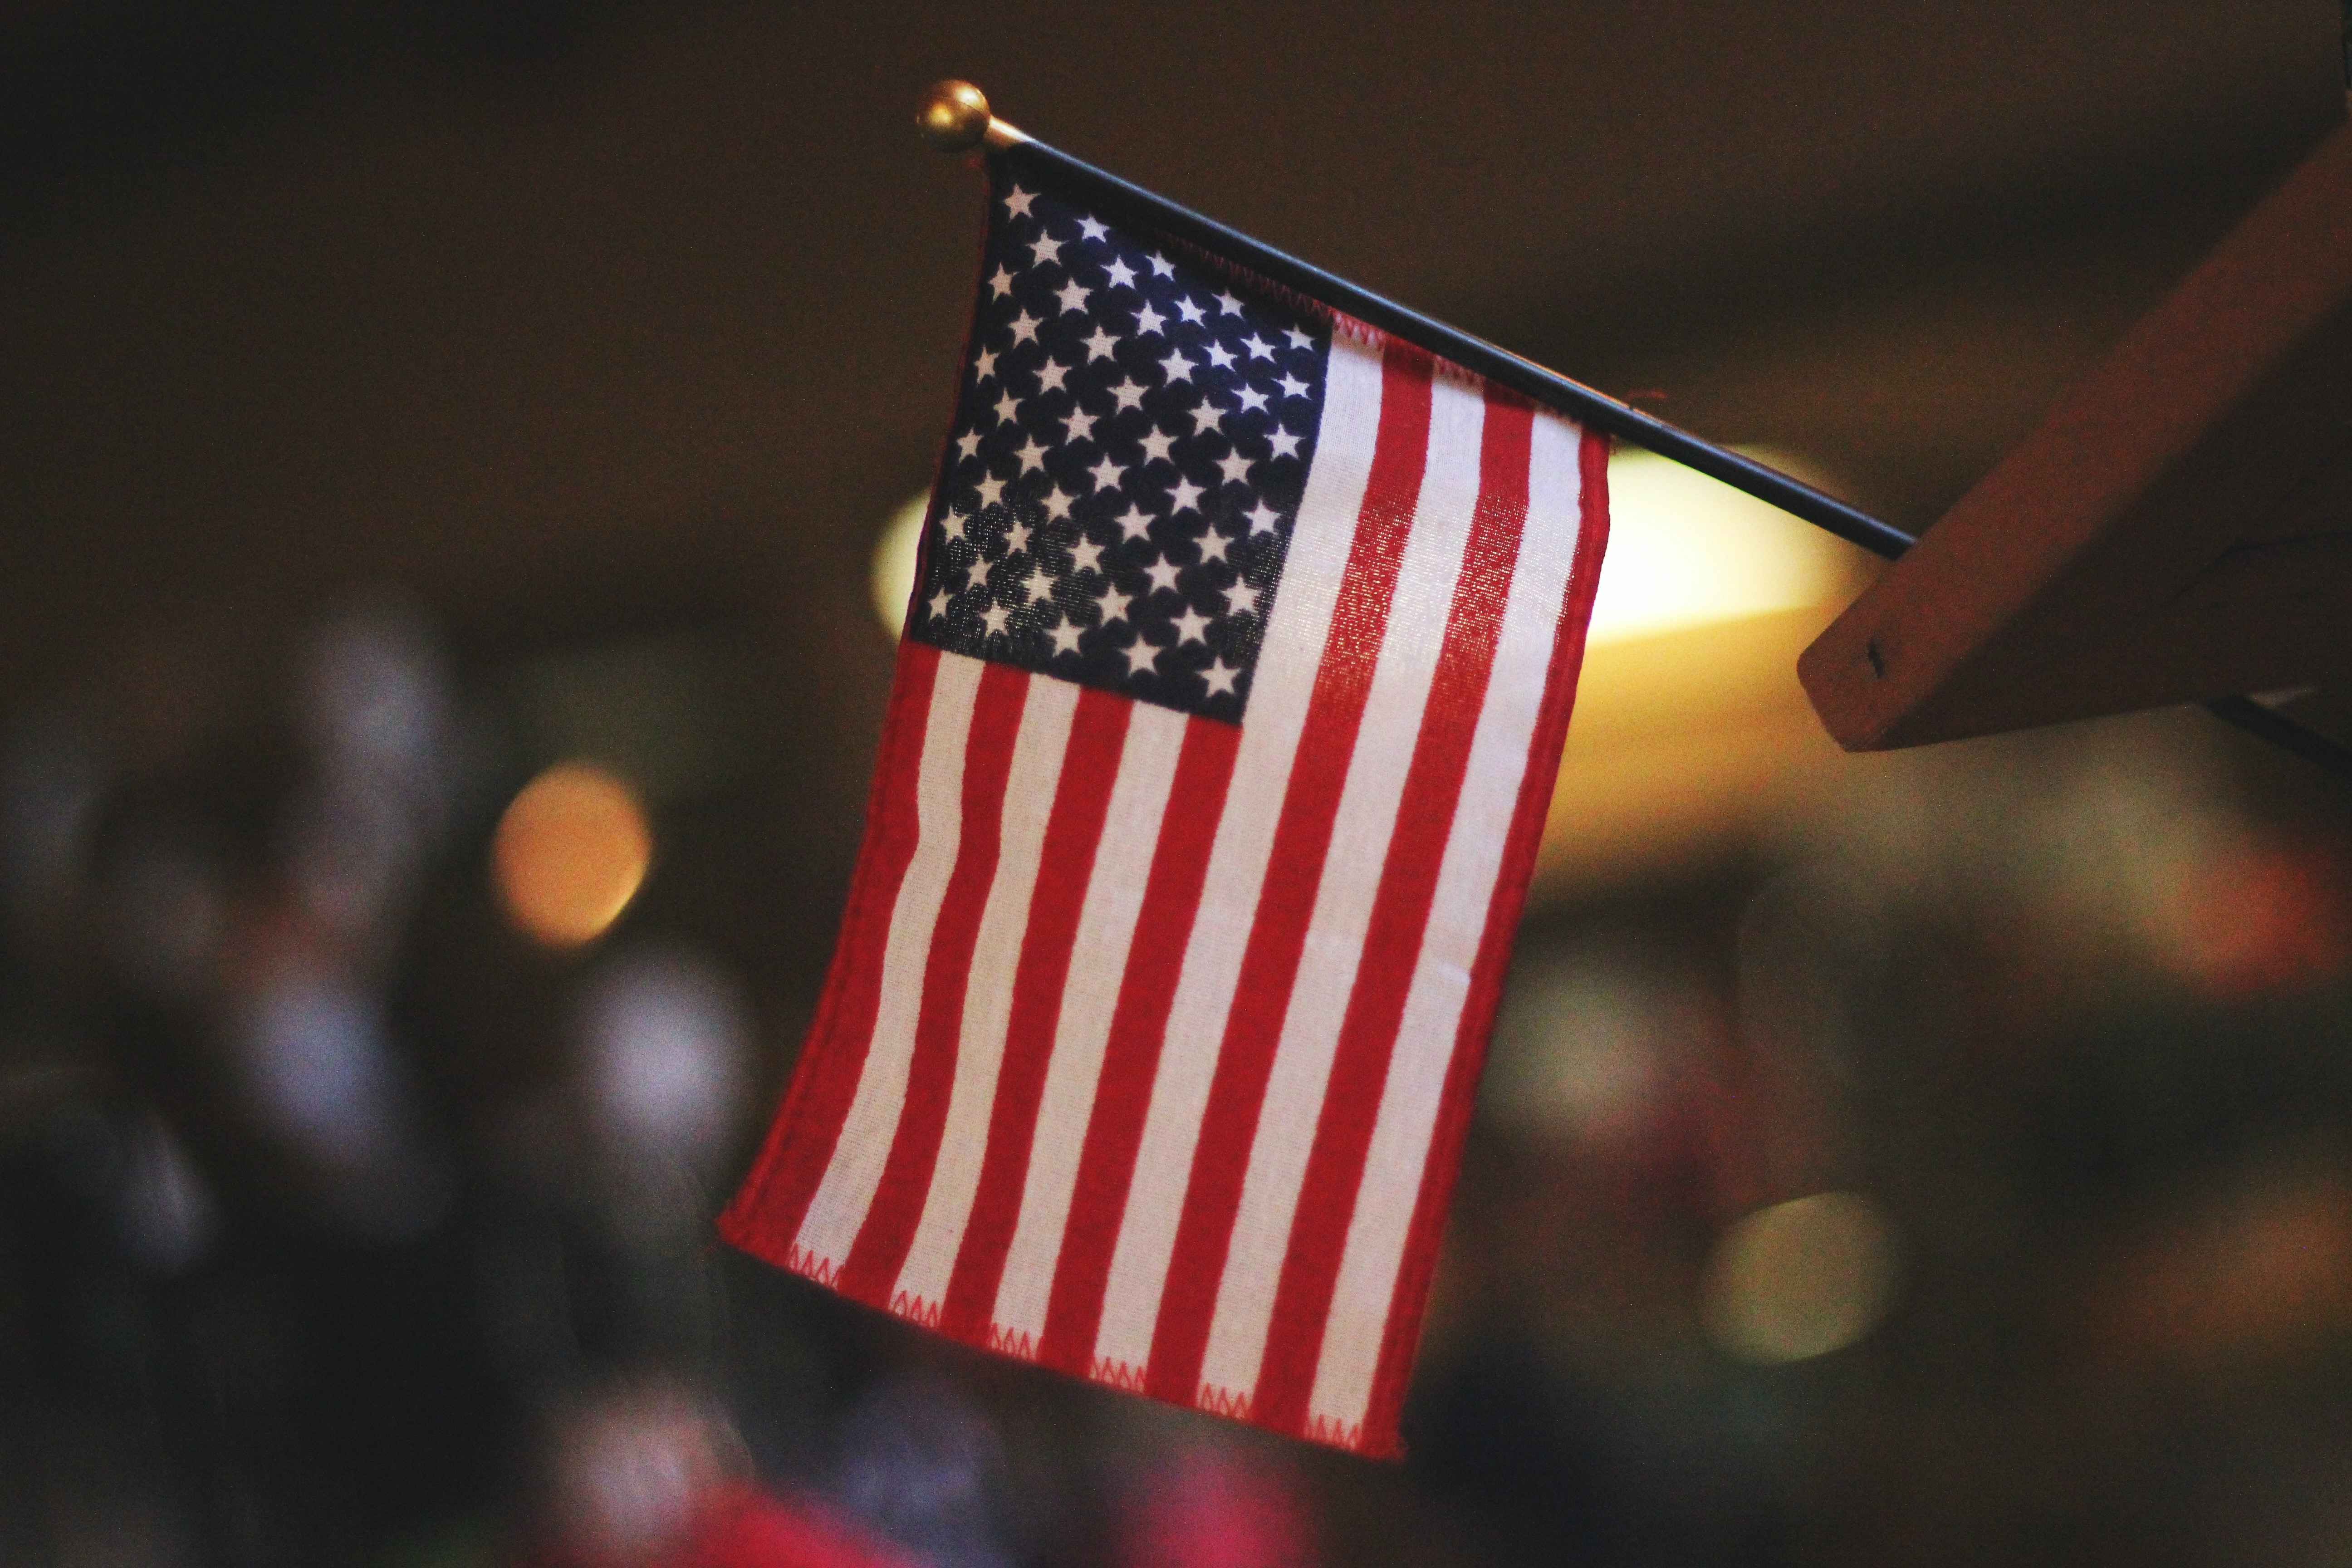 A patriotic American flag sitting on a table as a display of pride